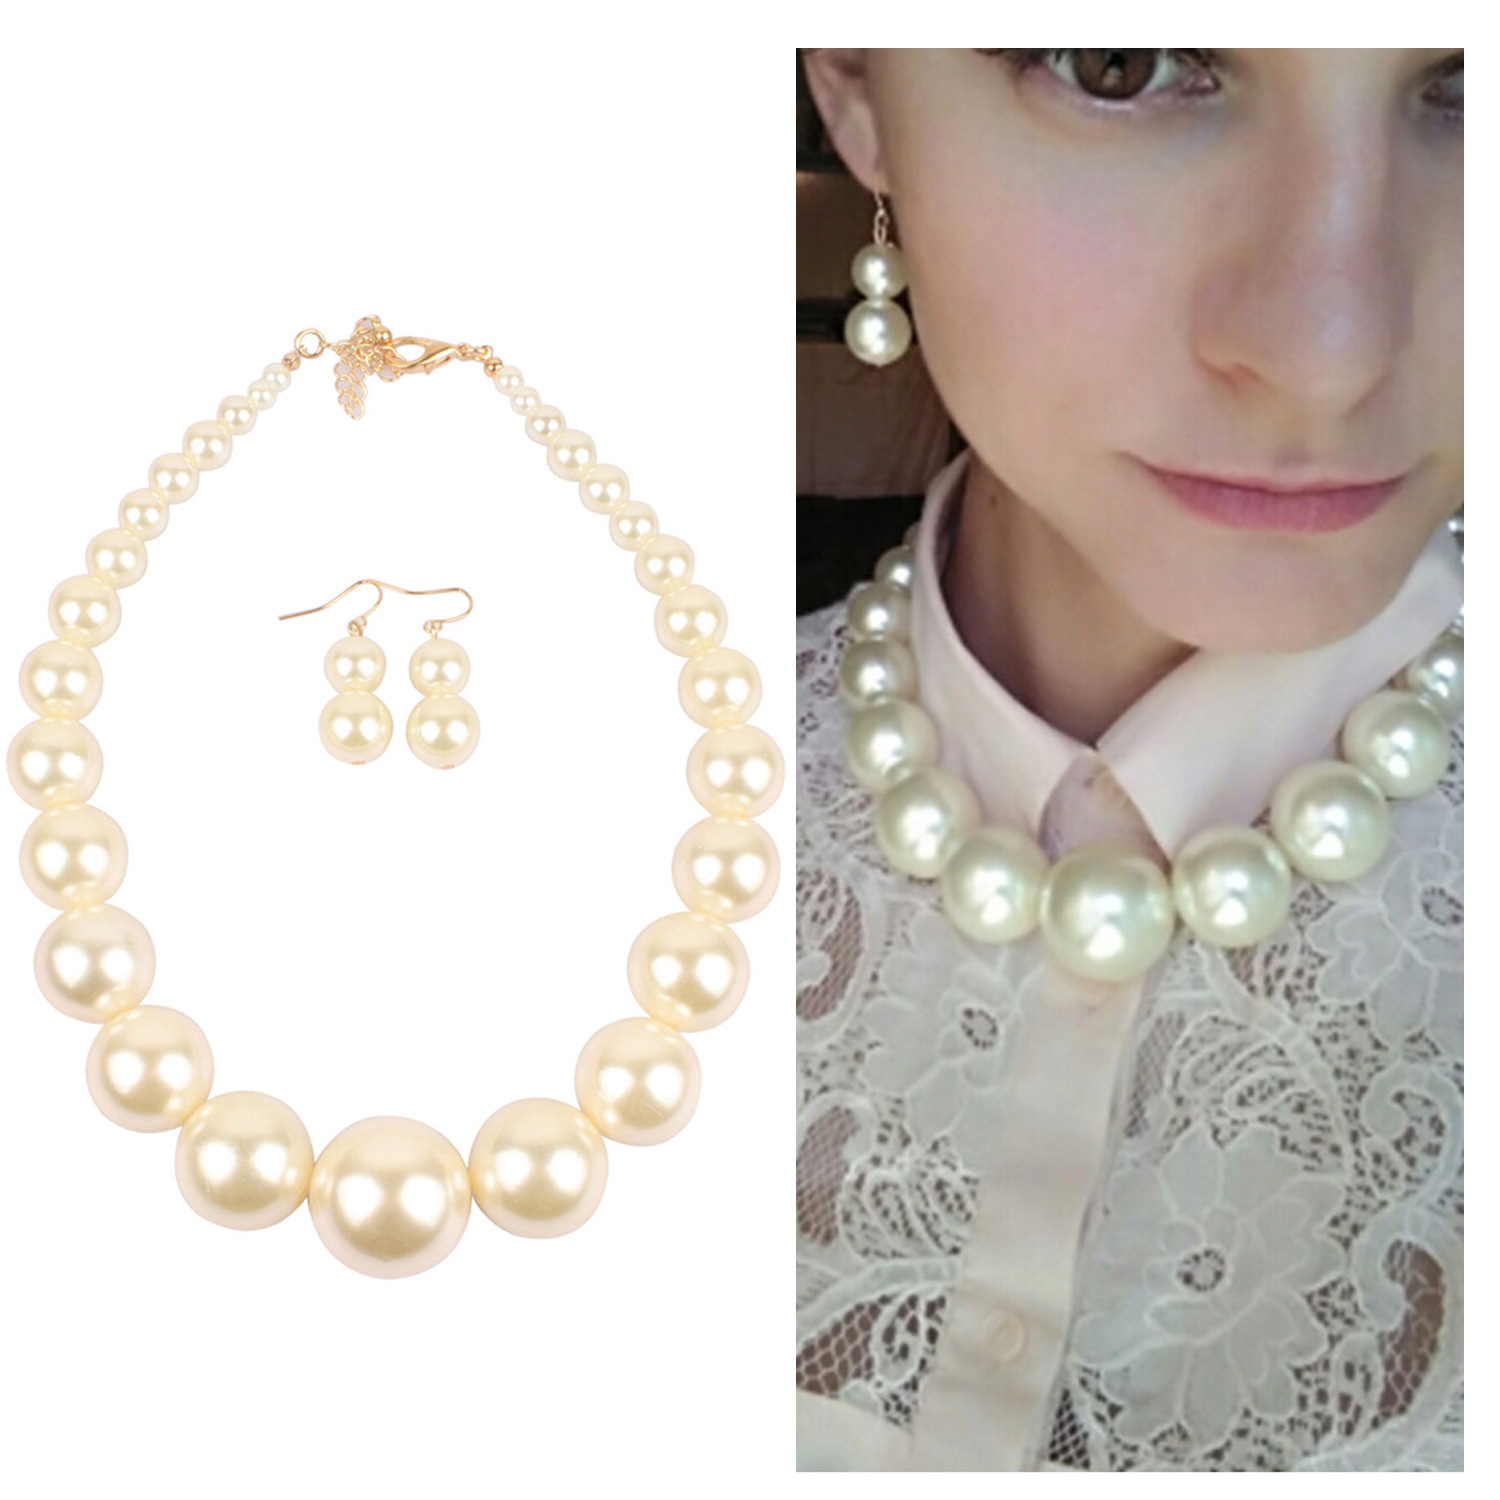 Shiny Colored Faux Pearl Necklace and Earrings for Classy Looks